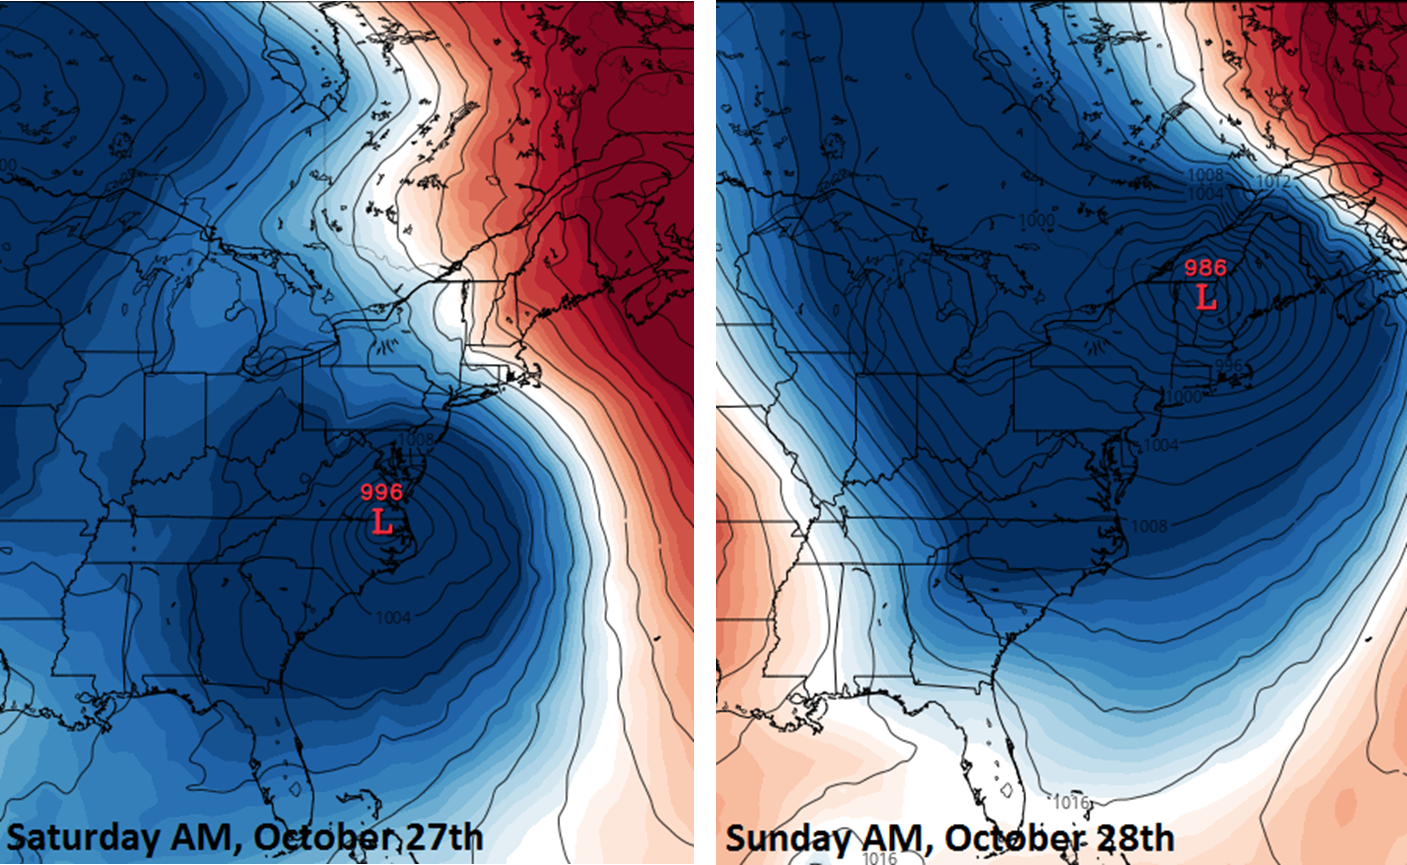 12Z Euro surface forecast maps for Saturday AM October 27th (left) and Sunday AM October 28th (right) with an intensifying low pressure system near the east coast; courtesy tropicaltidbits.com, ECMWF